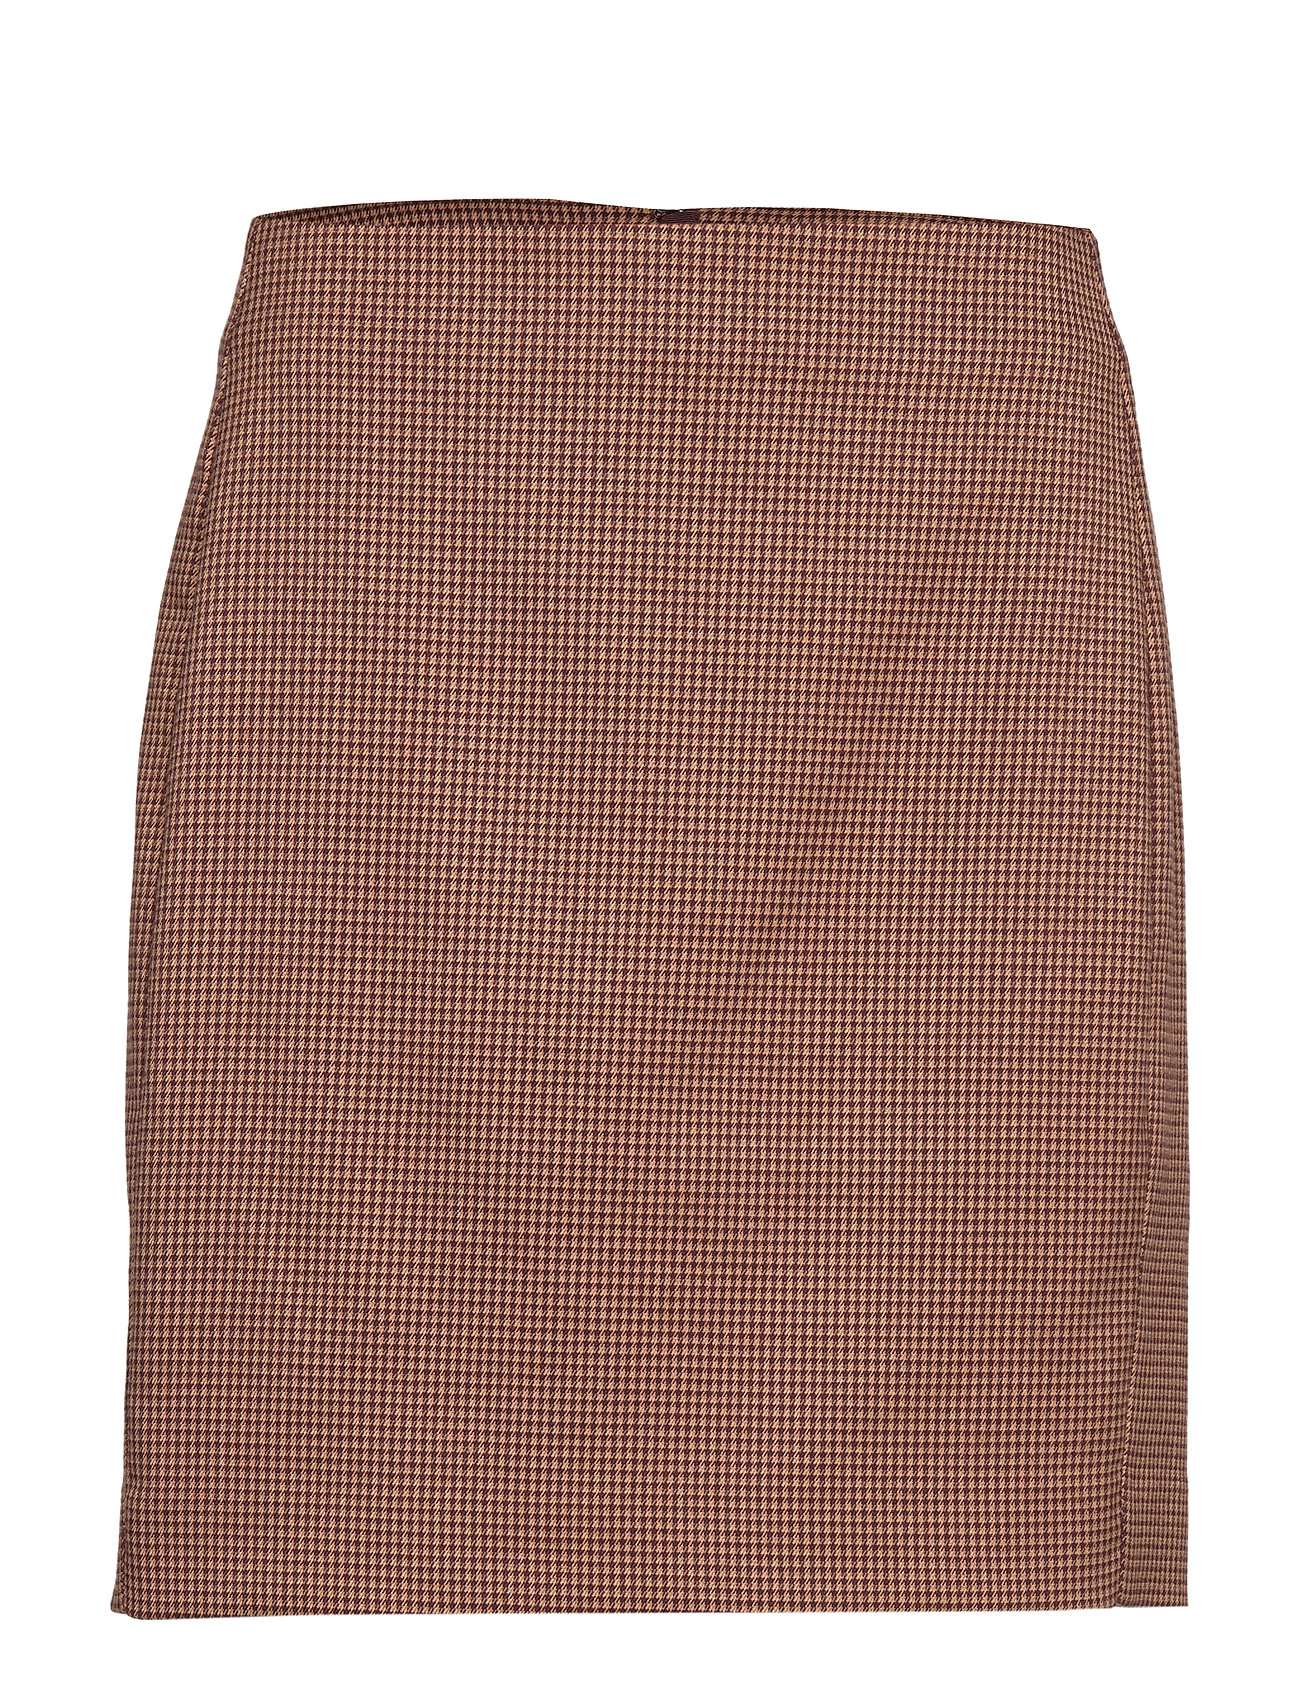 InWear ReginaIW Urbi Skirt - MICRO CHECKS